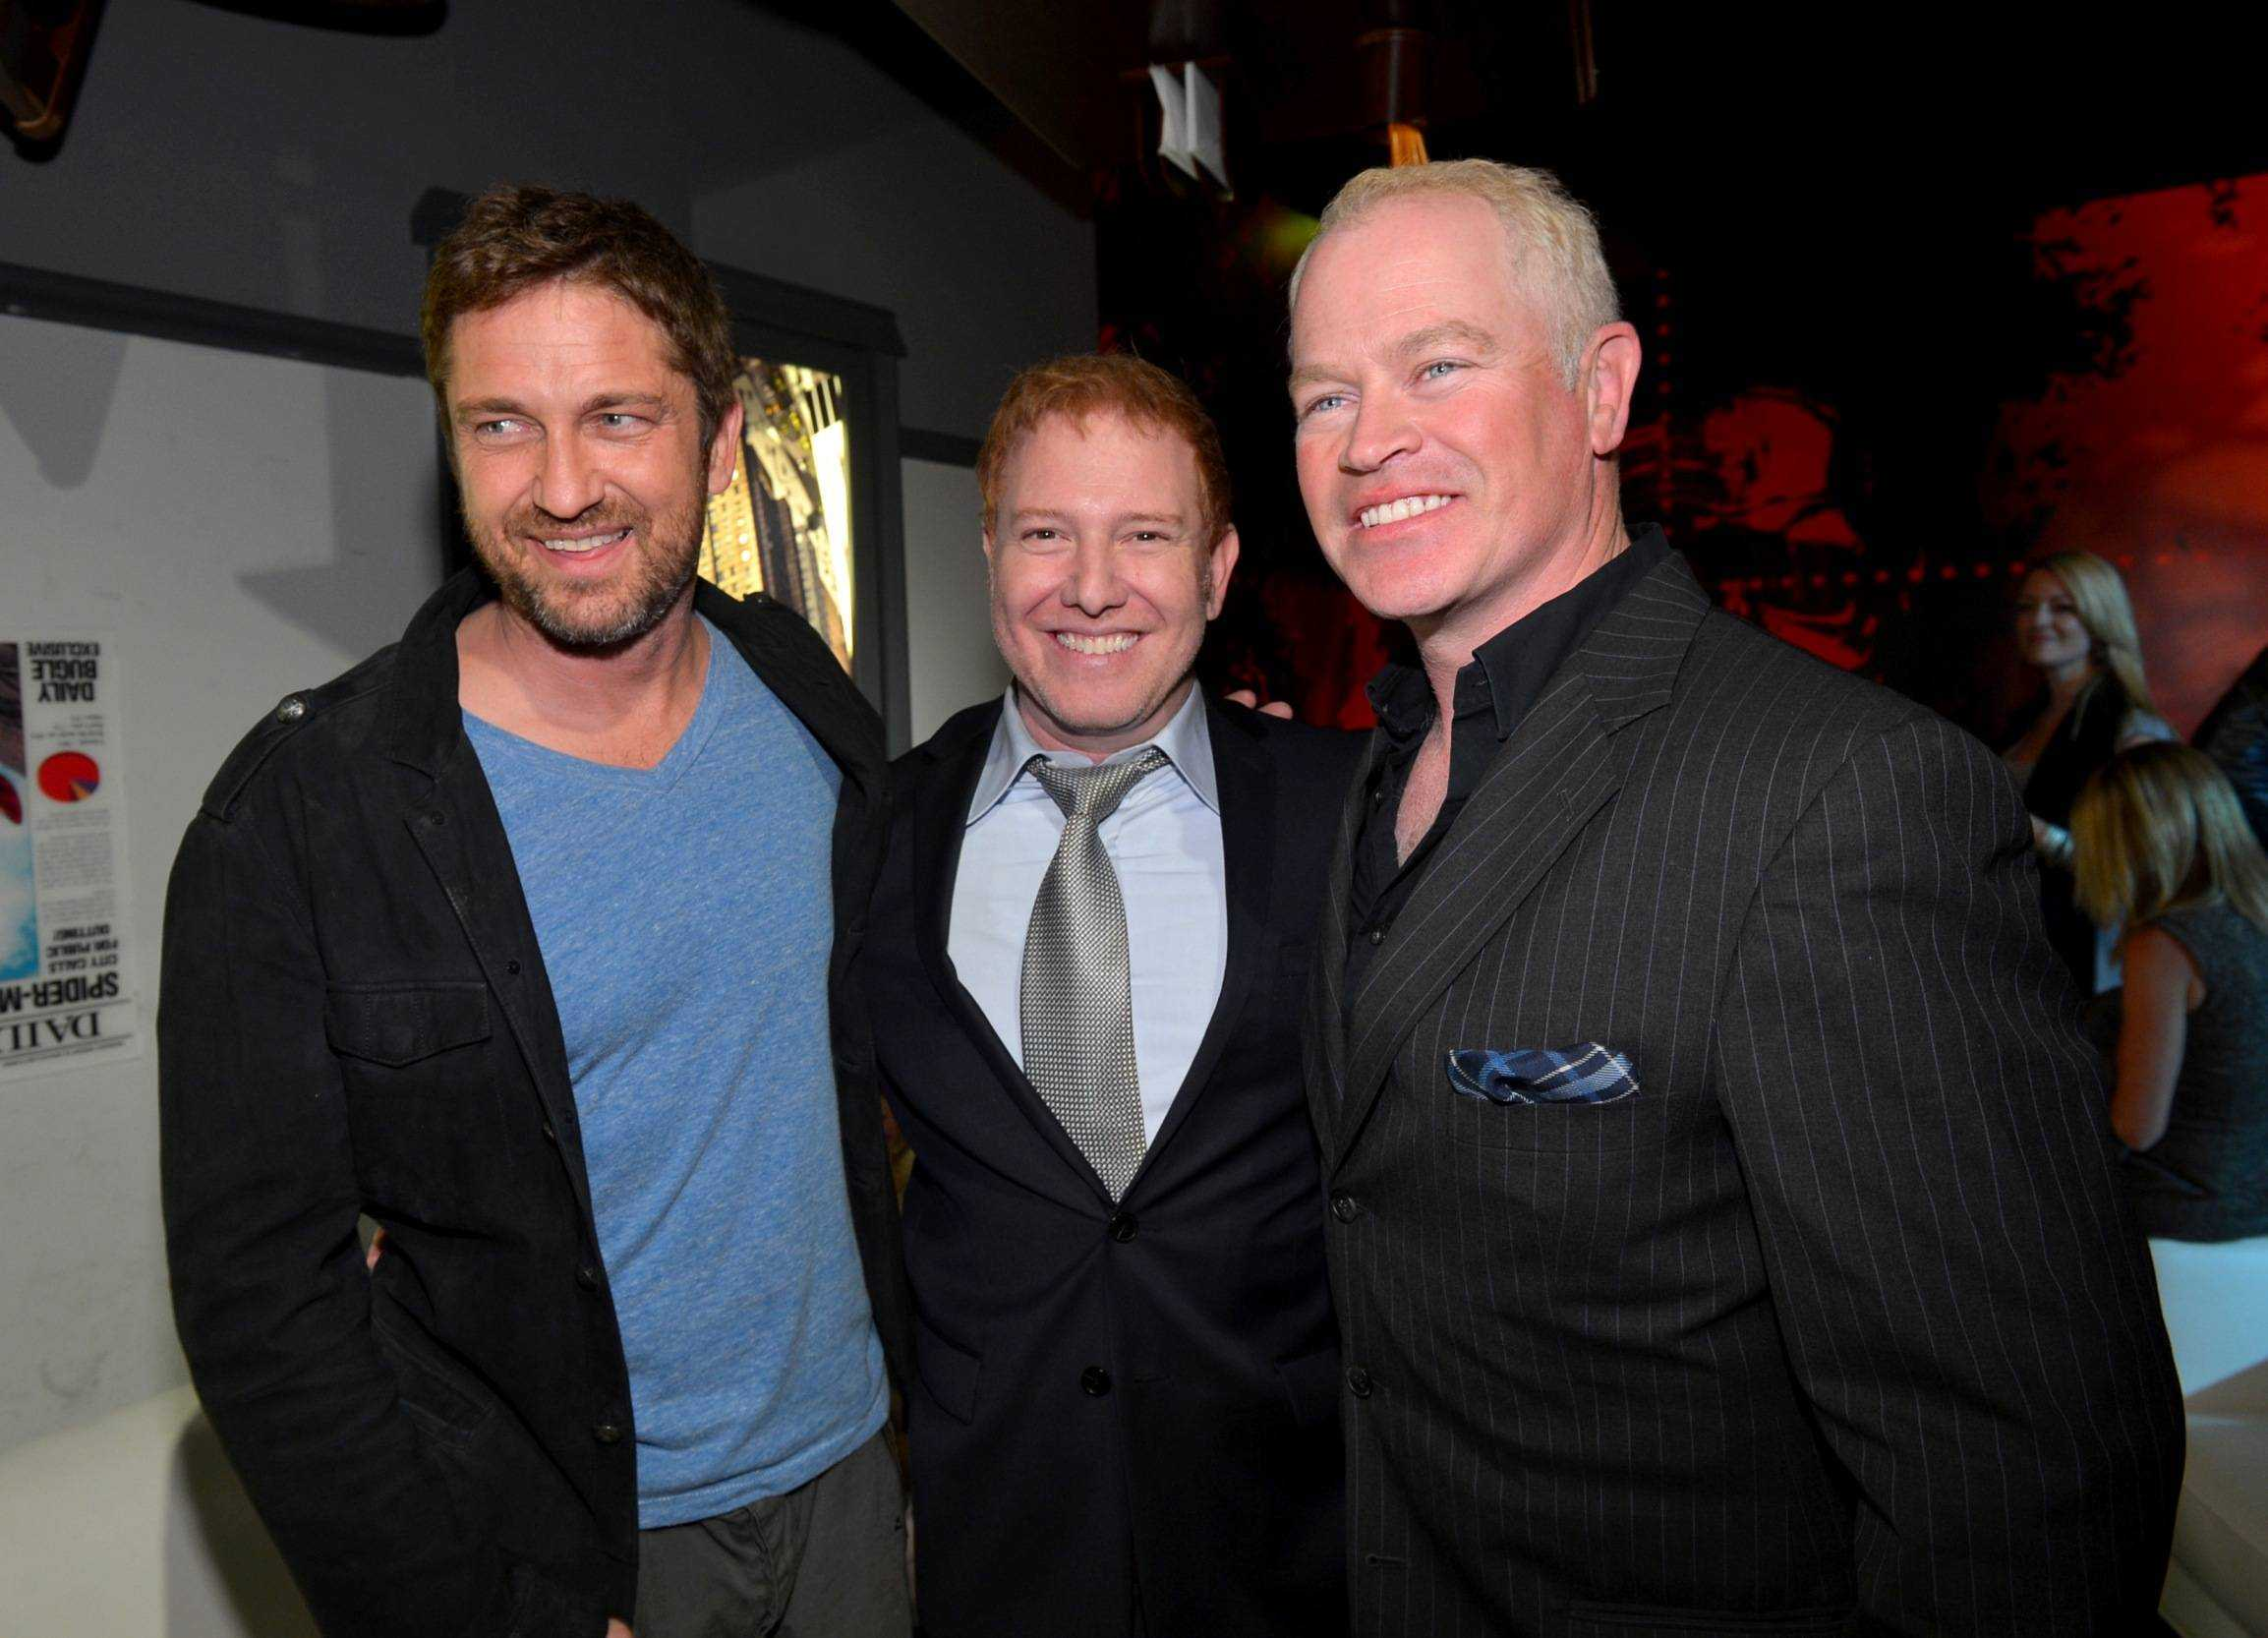 Actor Gerard, Relativity Media CEO Ryan Kavanaugh and actor Neal McDonough attend Relativity Media's Movie 43 Los Angeles Premiere After Party on January 23, 2013 in Hollywood, California.